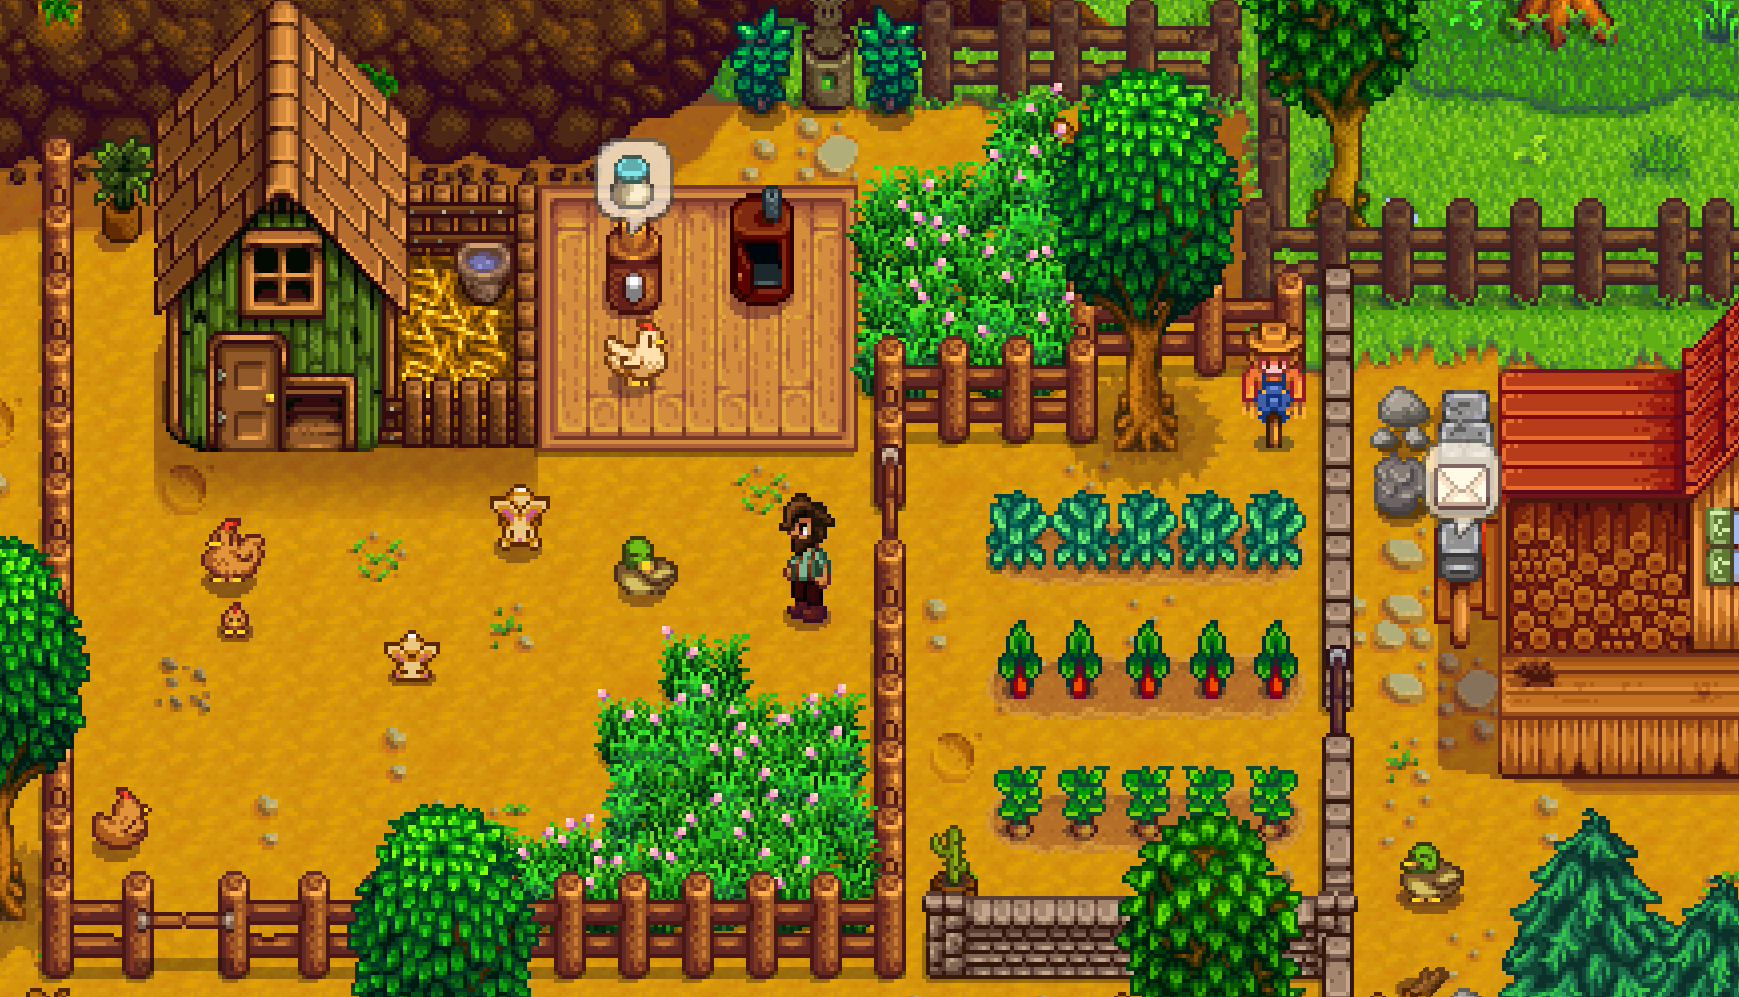 The happy place: why Stardew Valley is so much more than a parsnip empire